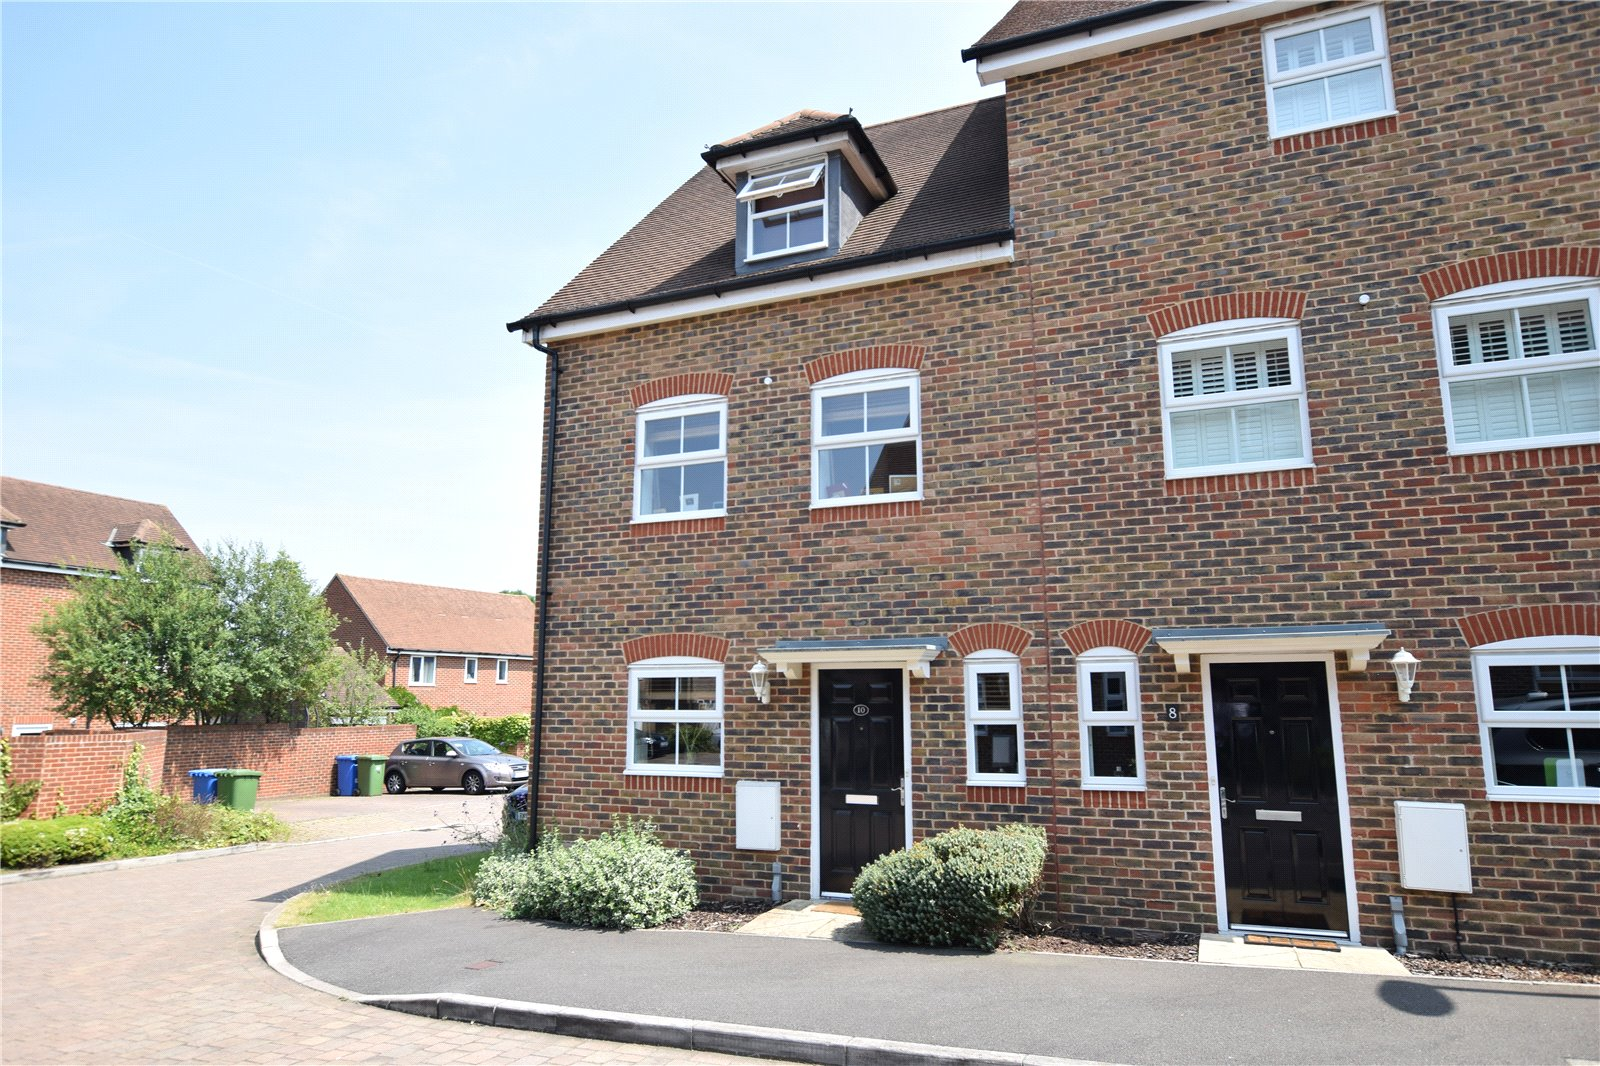 3 Bedrooms End Of Terrace House for sale in Capercaillie Close, Bracknell, Berkshire, RG12